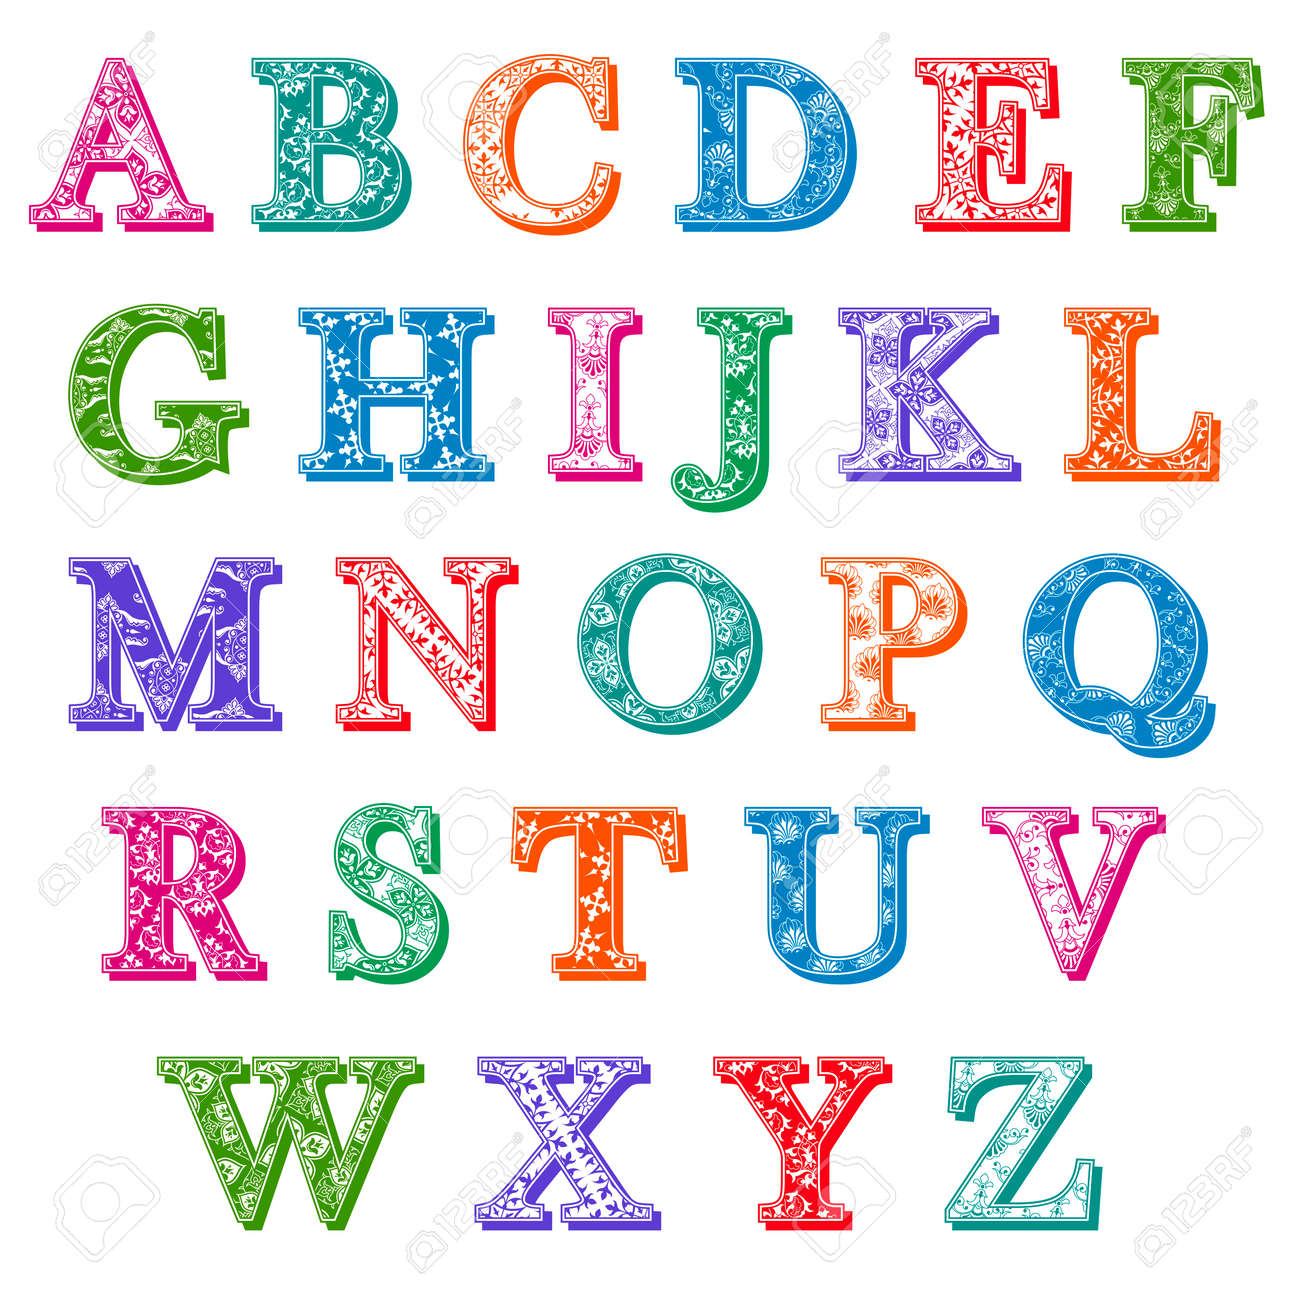 Complete Set Of Colorful Antiqua Uppercase Alphabet Letters With Floral Patterns And Drop Shadows In The